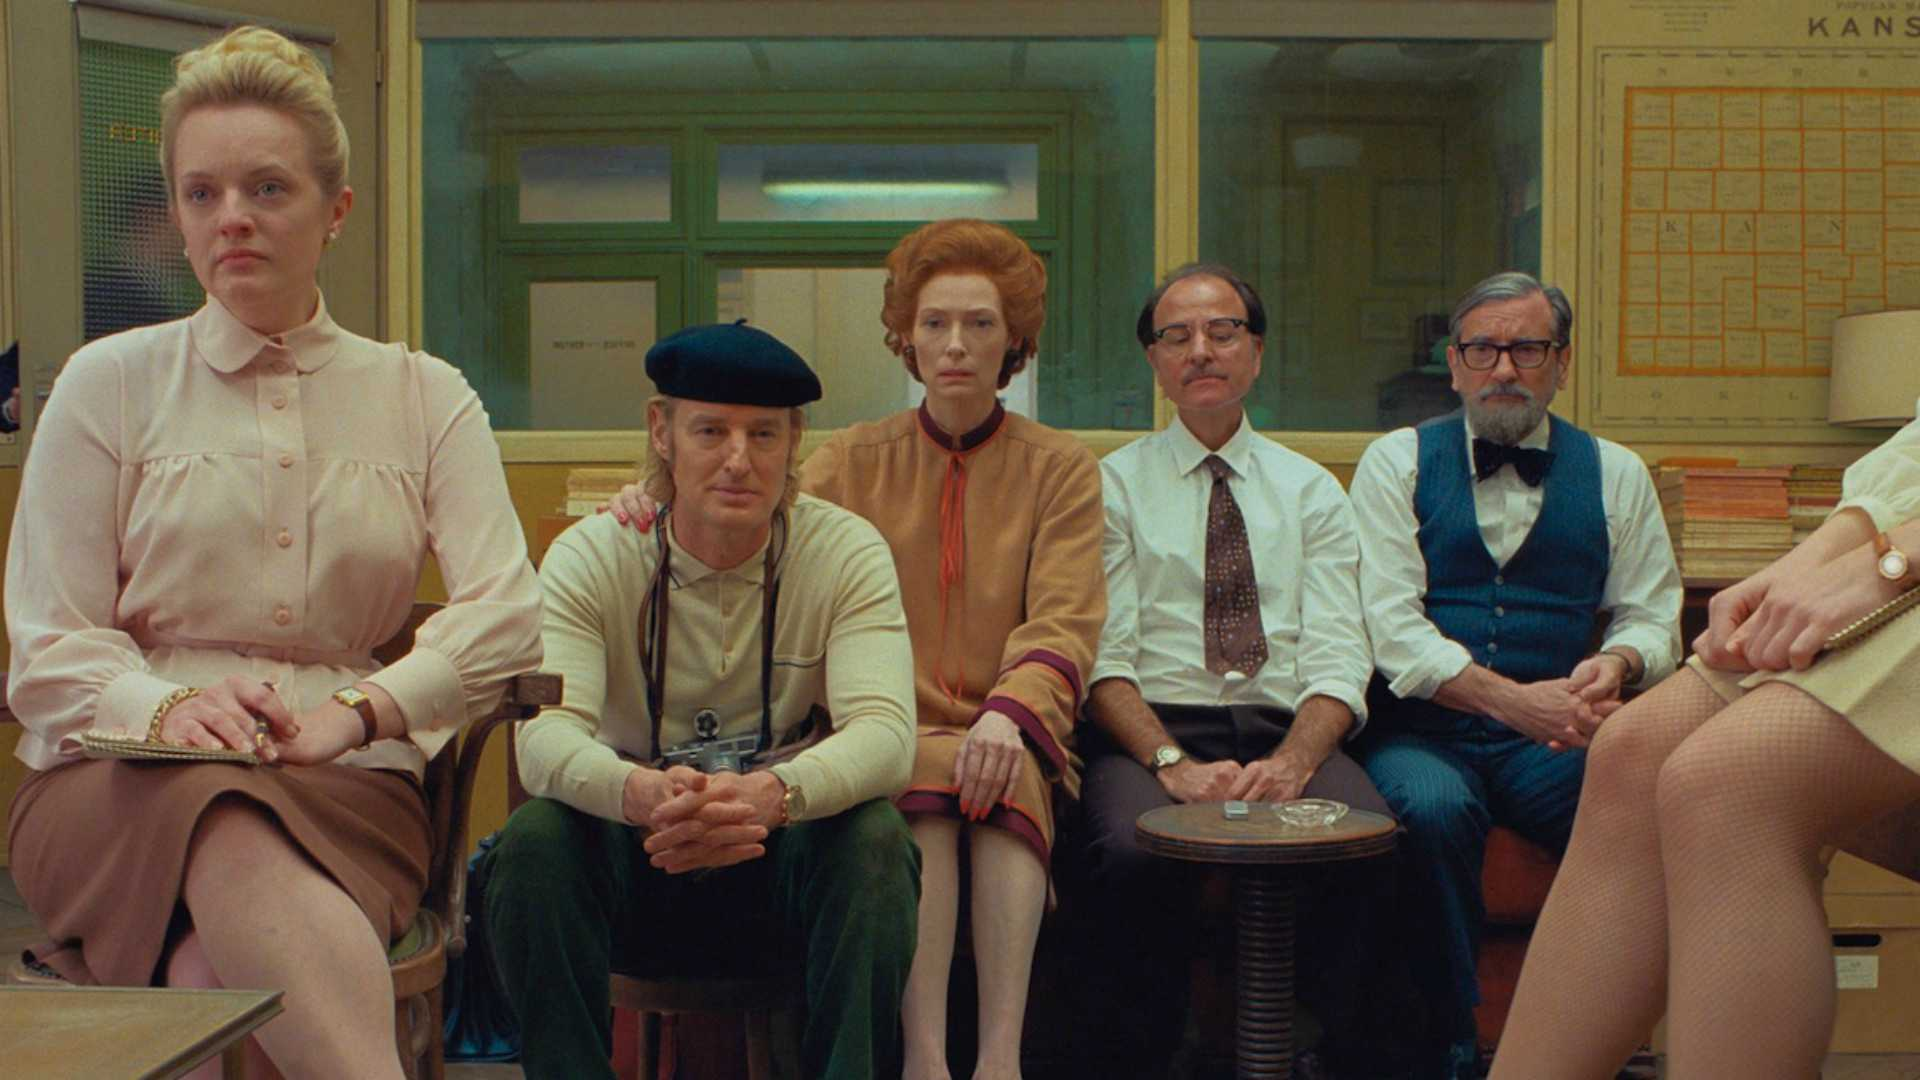 EXCLUSIVE: WES ANDERSON TALKS THE FRENCH DISPATCH